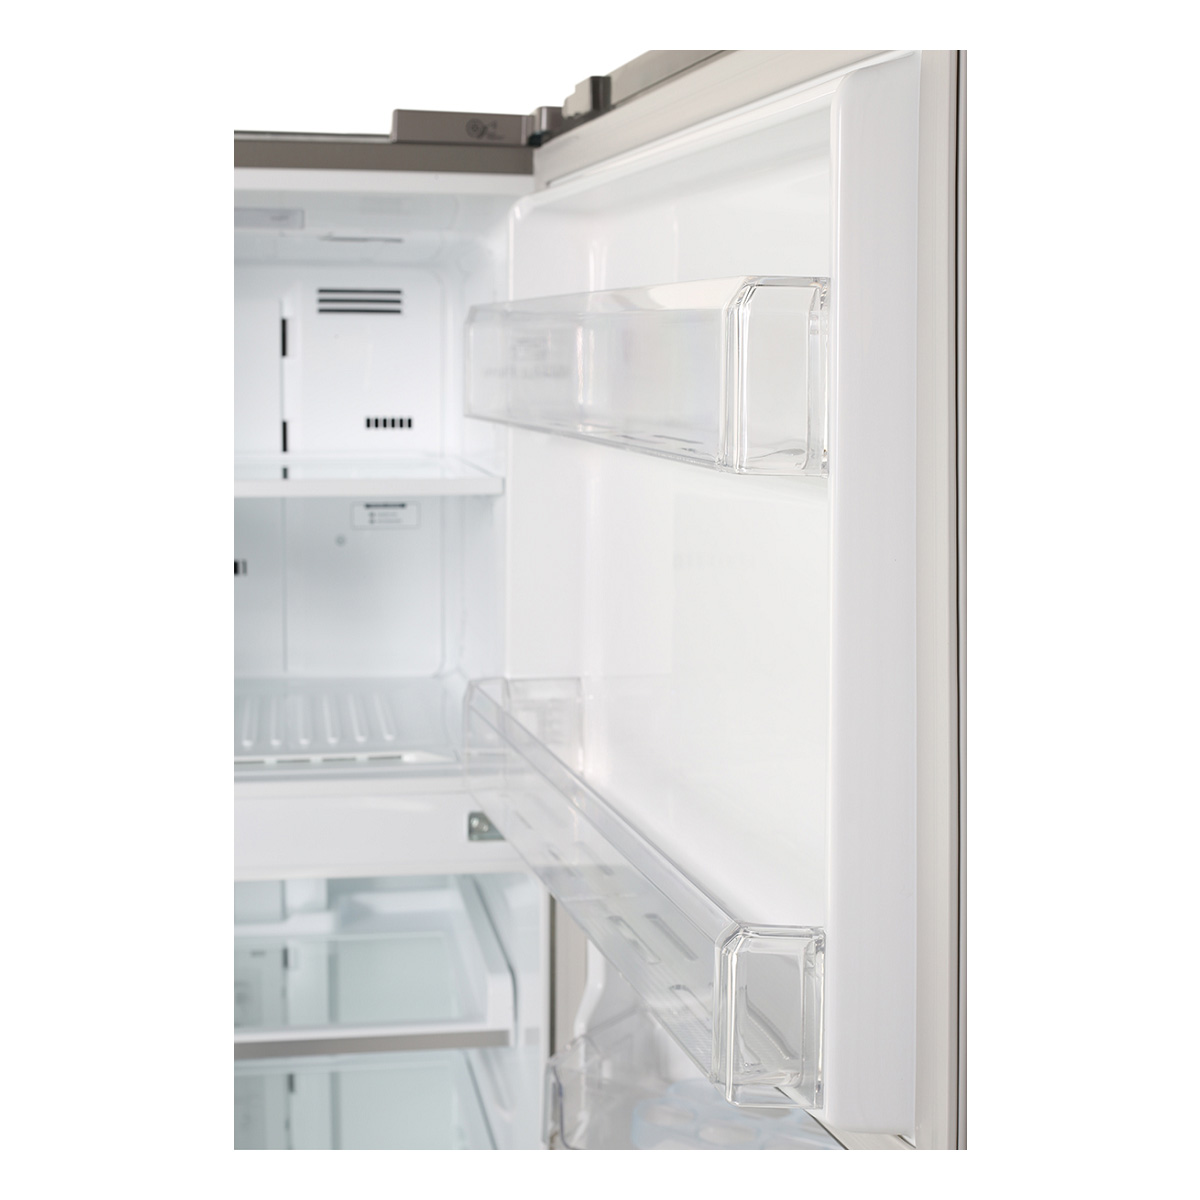 LG GT-515BPL 515L Top Mount Fridge 35593